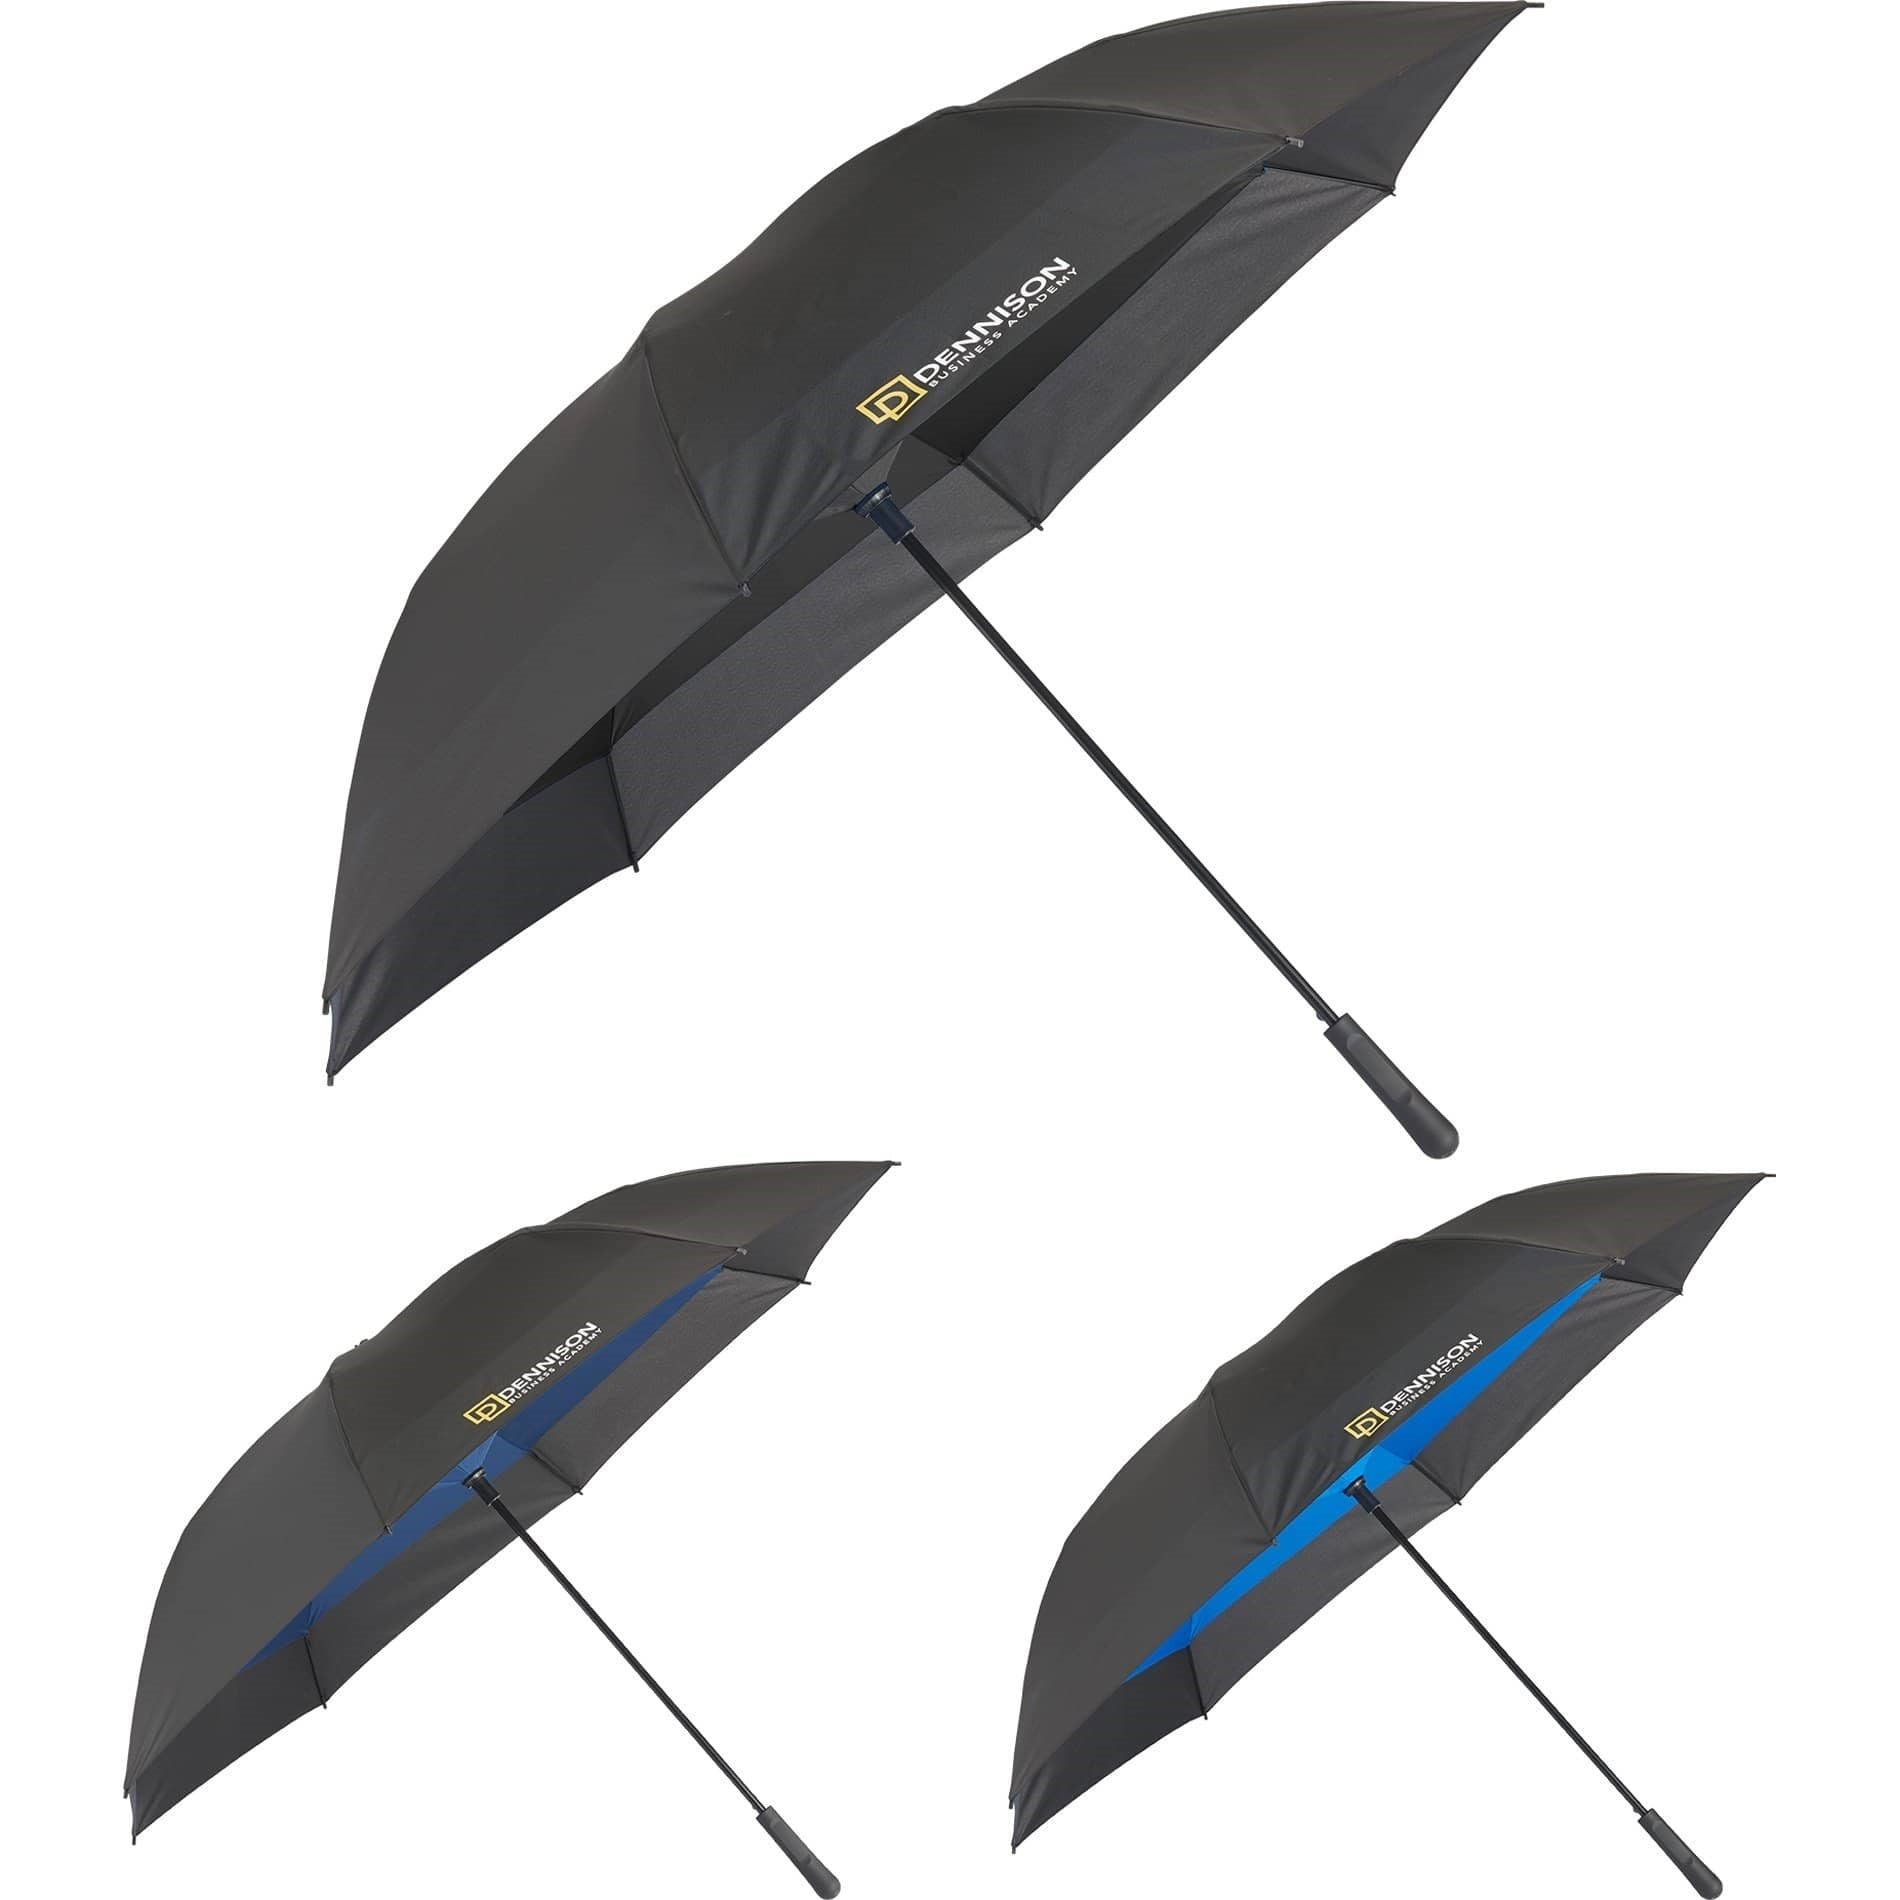 Jumbo inverted umbrellas with logo